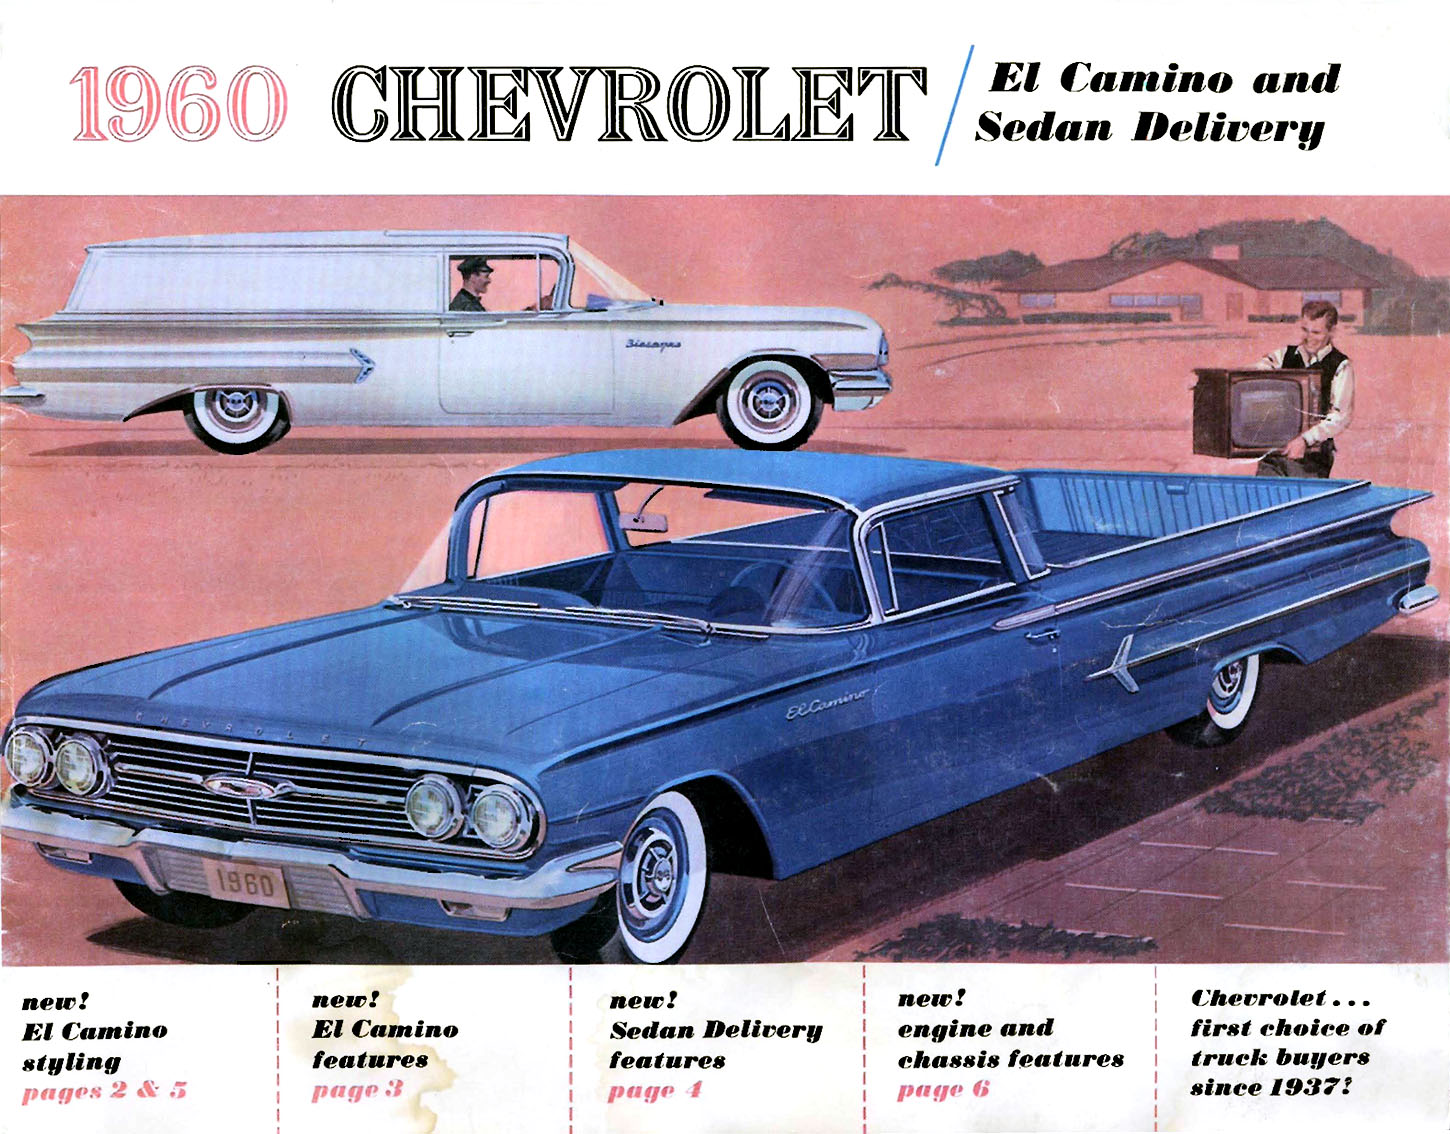 Update Gm Ceo Mary Barra Comes Through For A 6 Year Old El Camino